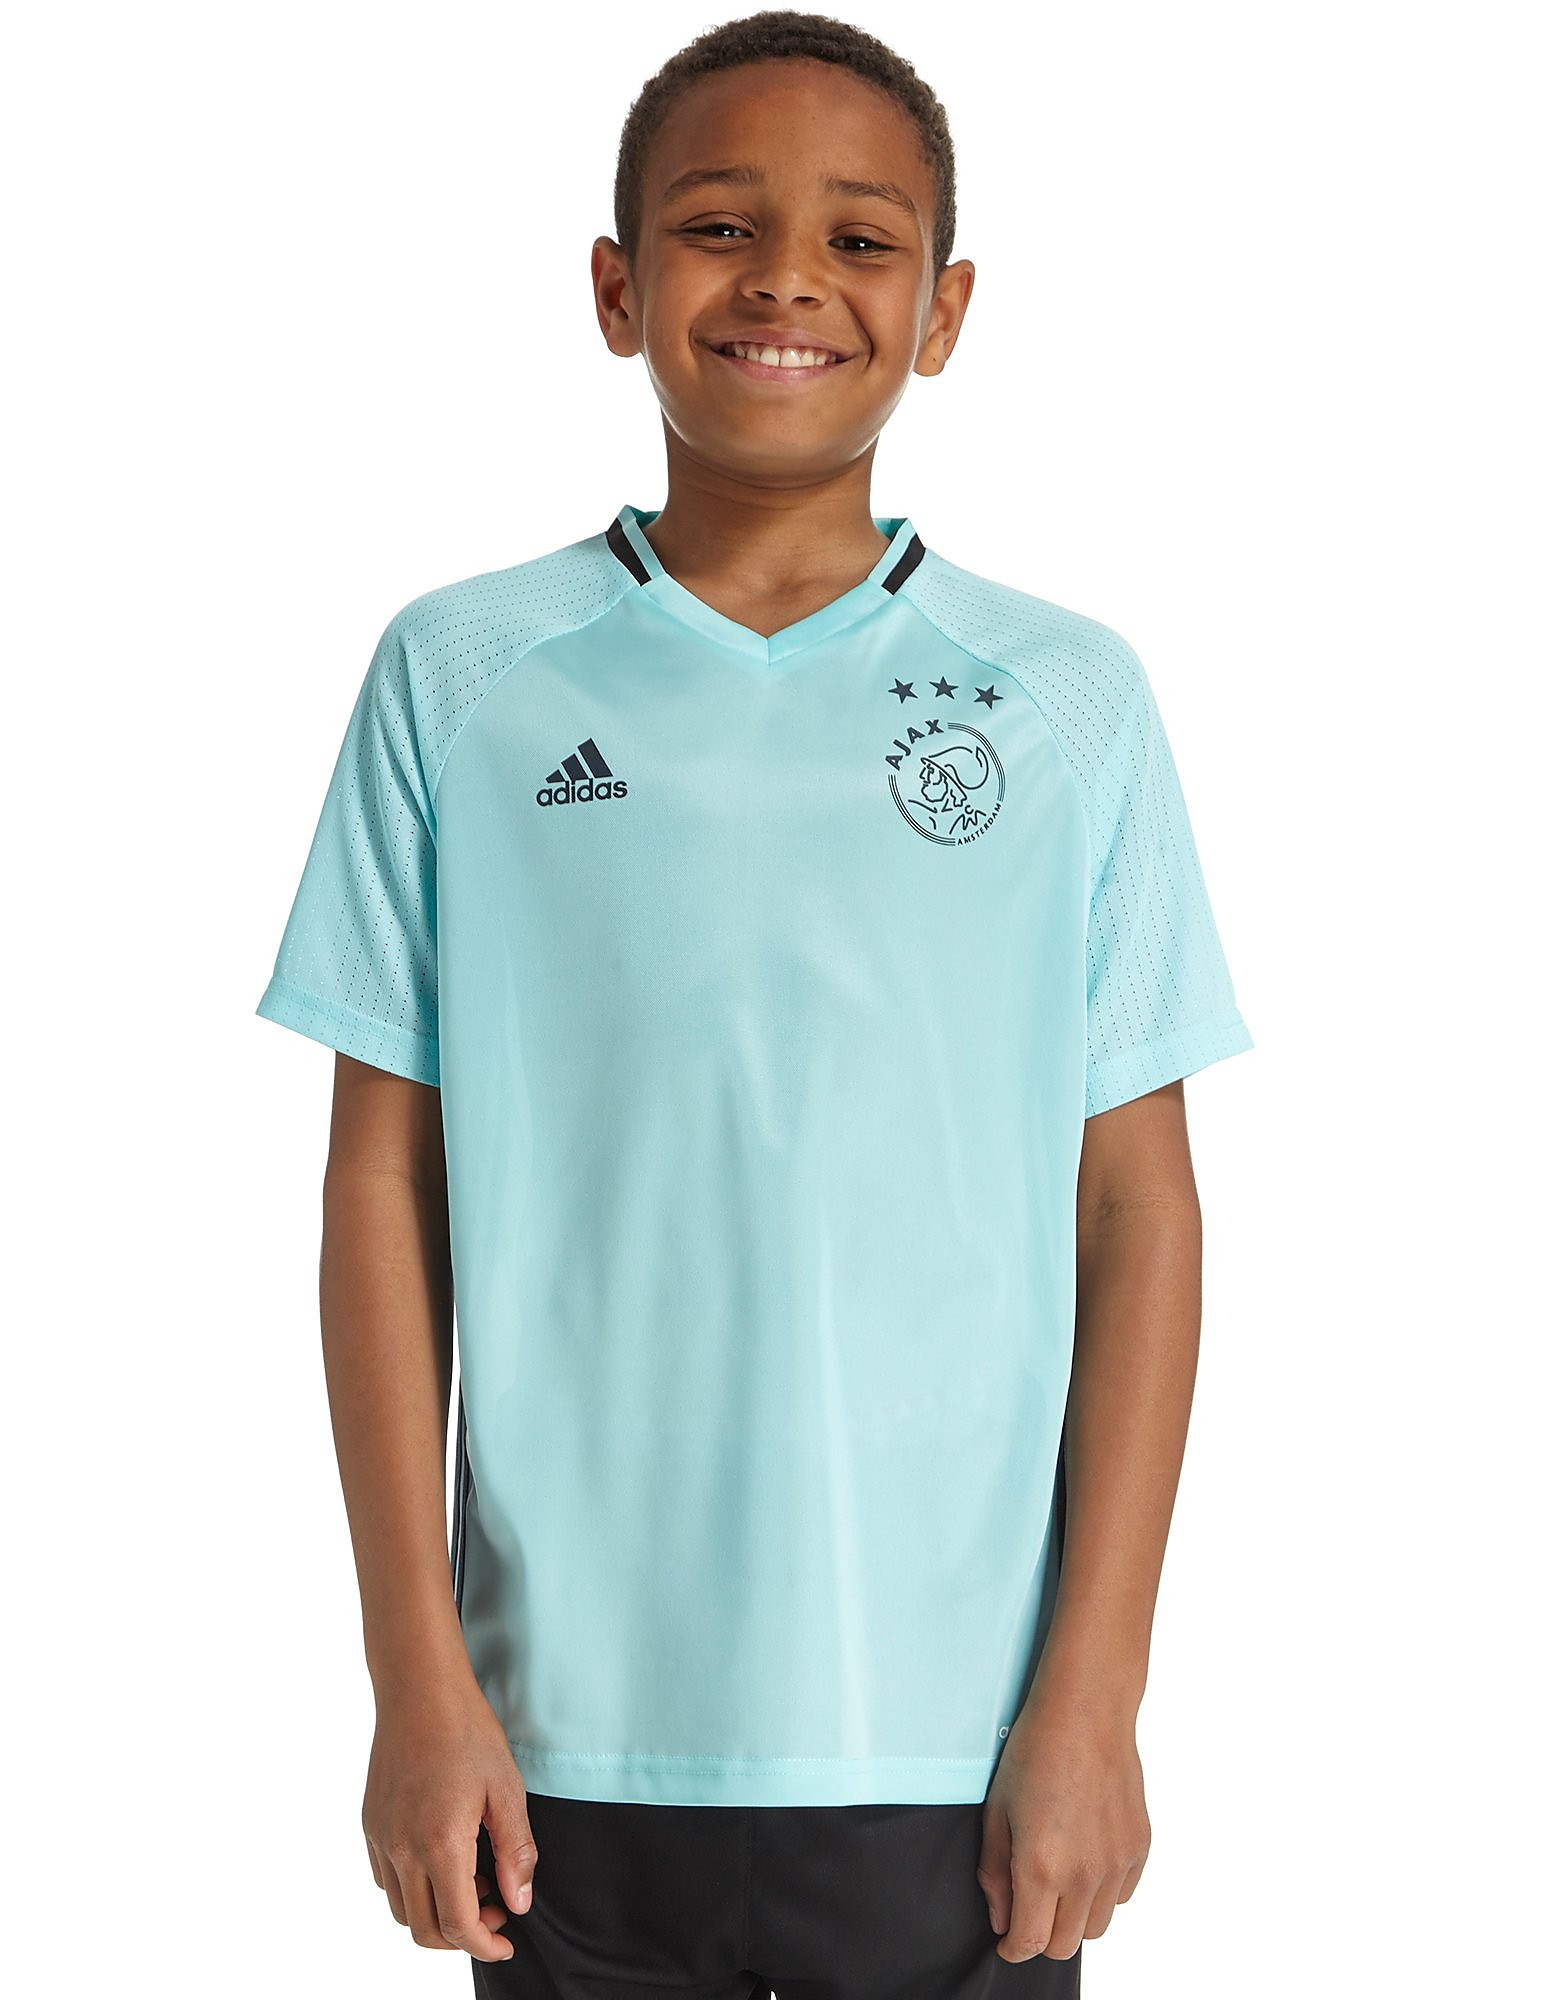 adidas Ajax 2016/17 Training Jersey Junior